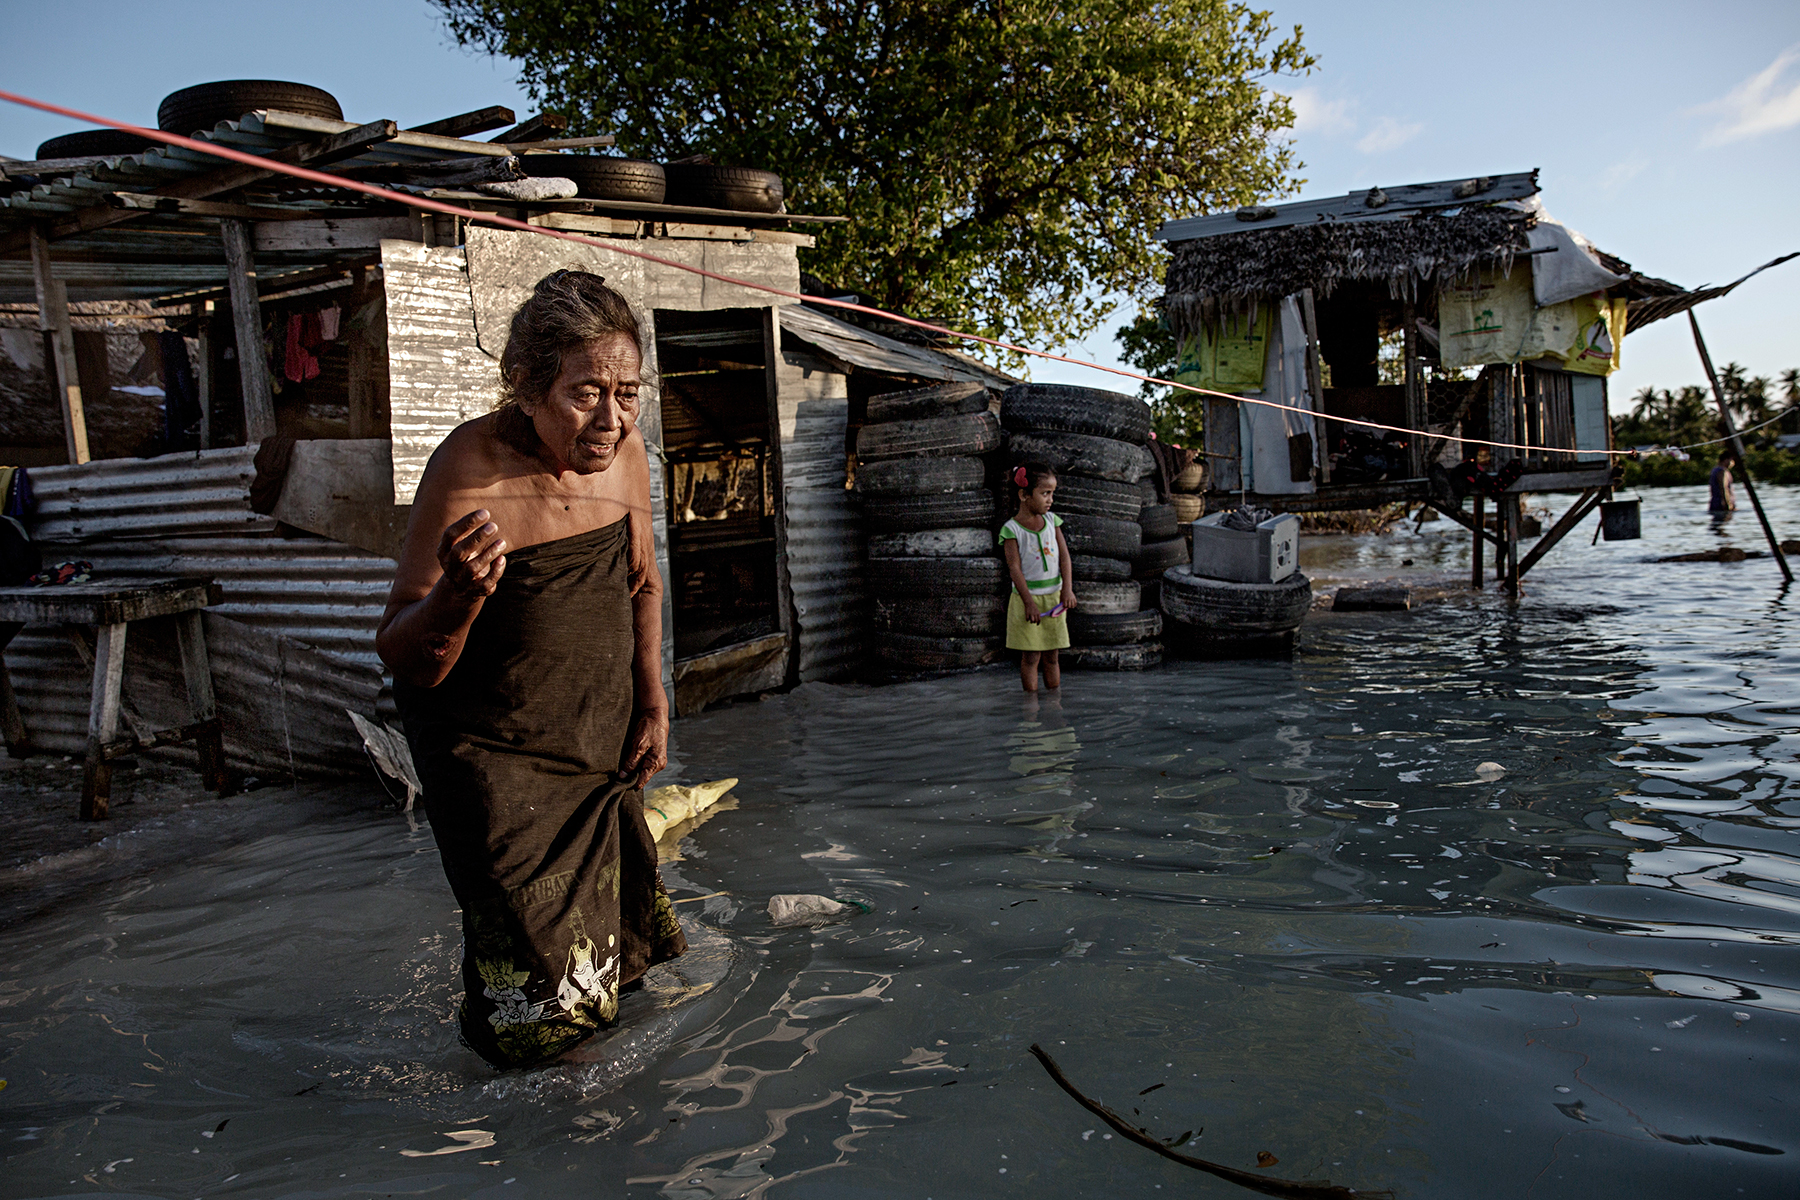 EITA, TARAWA, KIRIBATI - 2015/09/30: An elderly woman wades through knee-high sea water that flooded her house and village. The people of Kiribati are under pressure to relocate due to sea level rise. Each year, the sea level rises by about half an inch. Though this may not sound like much, it is a big deal considering the islands are only a few feet above sea level, which puts them at risk of flooding and sea swells. It is well agreeable that the people of Kiribati account for little to nothing in terms of green house emissions but are forced to face the direct consequences of global warming. And with an average age of 22, Kiribati's future generations are at risk of potentially lethal sea level rise. (Photo by Jonas Gratzer/LightRocket via Getty Images)